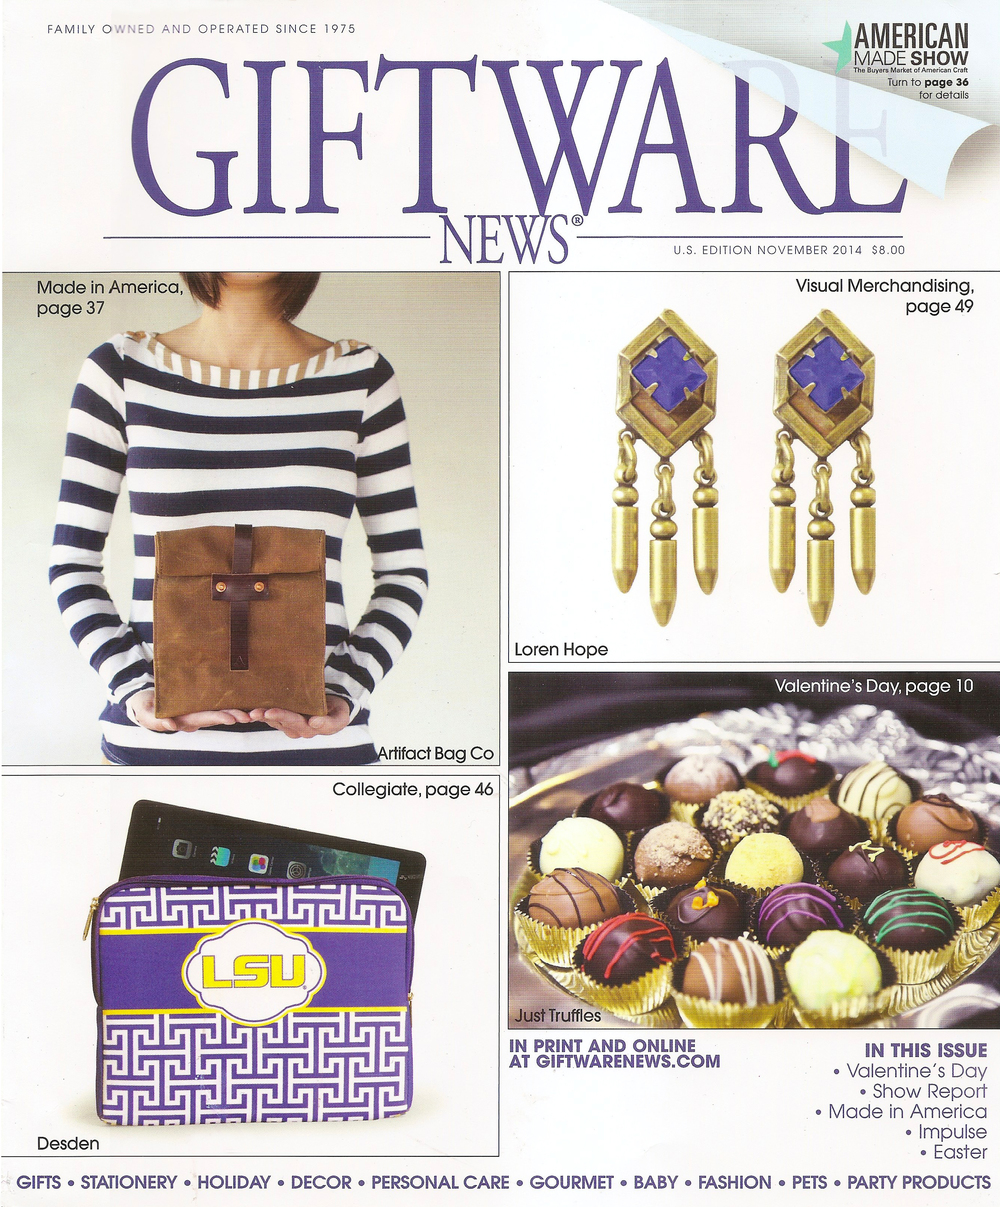 GiftWareNews_Nov2014.jpg